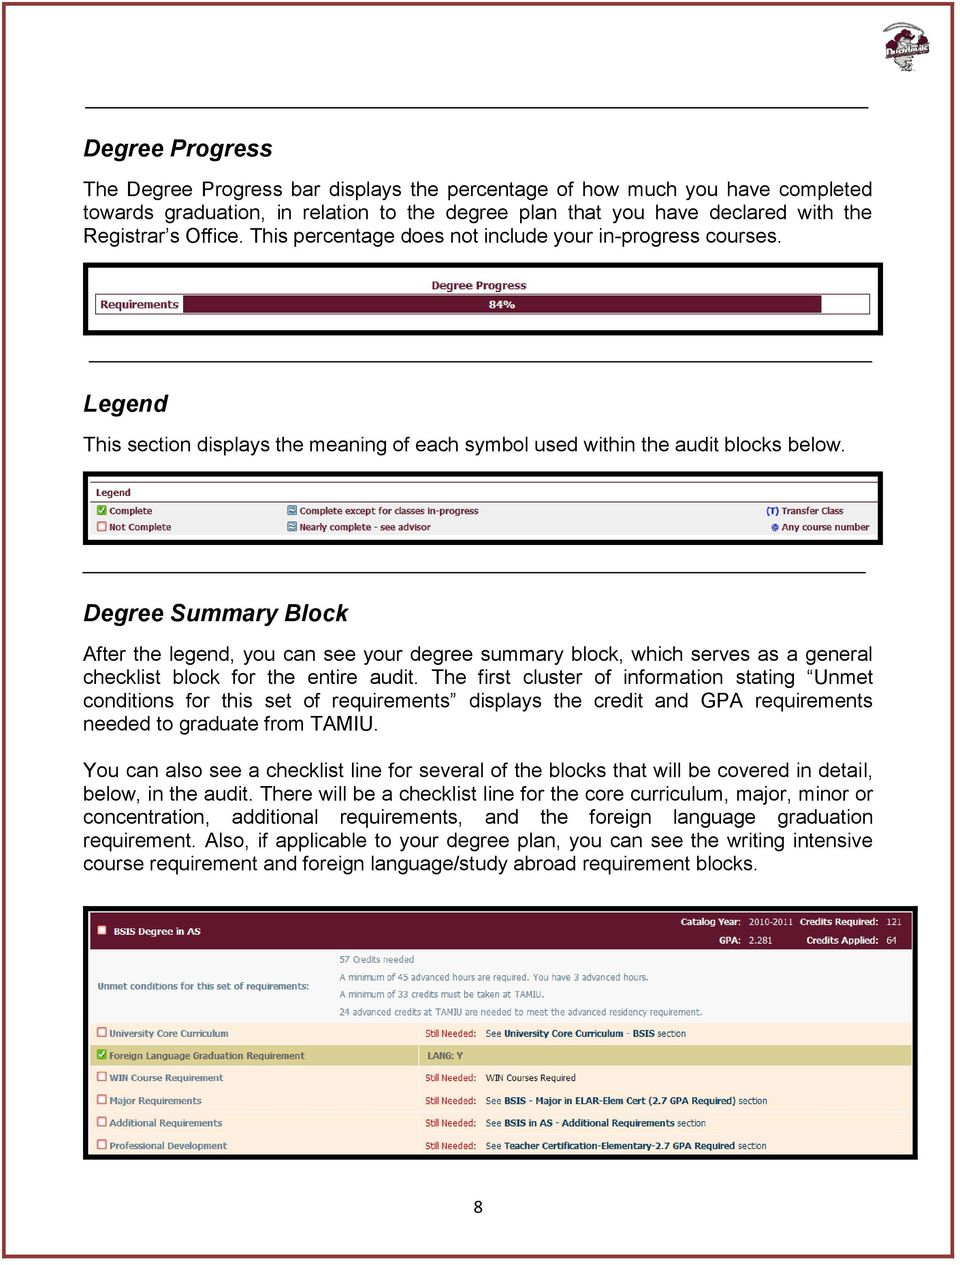 Degree Summary Block After the legend, you can see your degree summary block, which serves as a general checklist block for the entire audit.